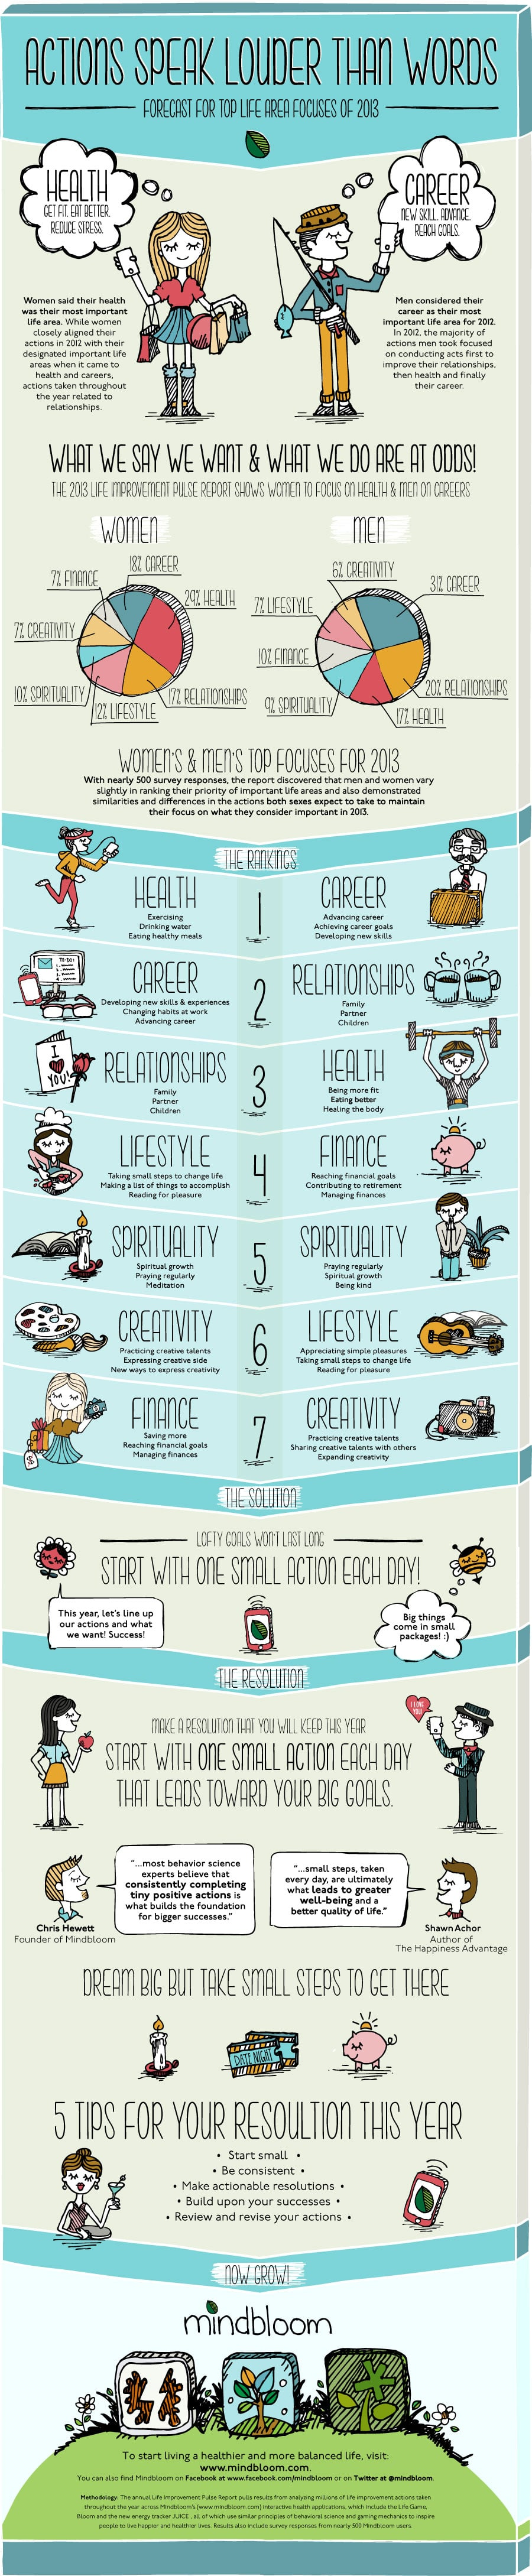 What's Important To Men & Women vs. What We Say [Infographic]